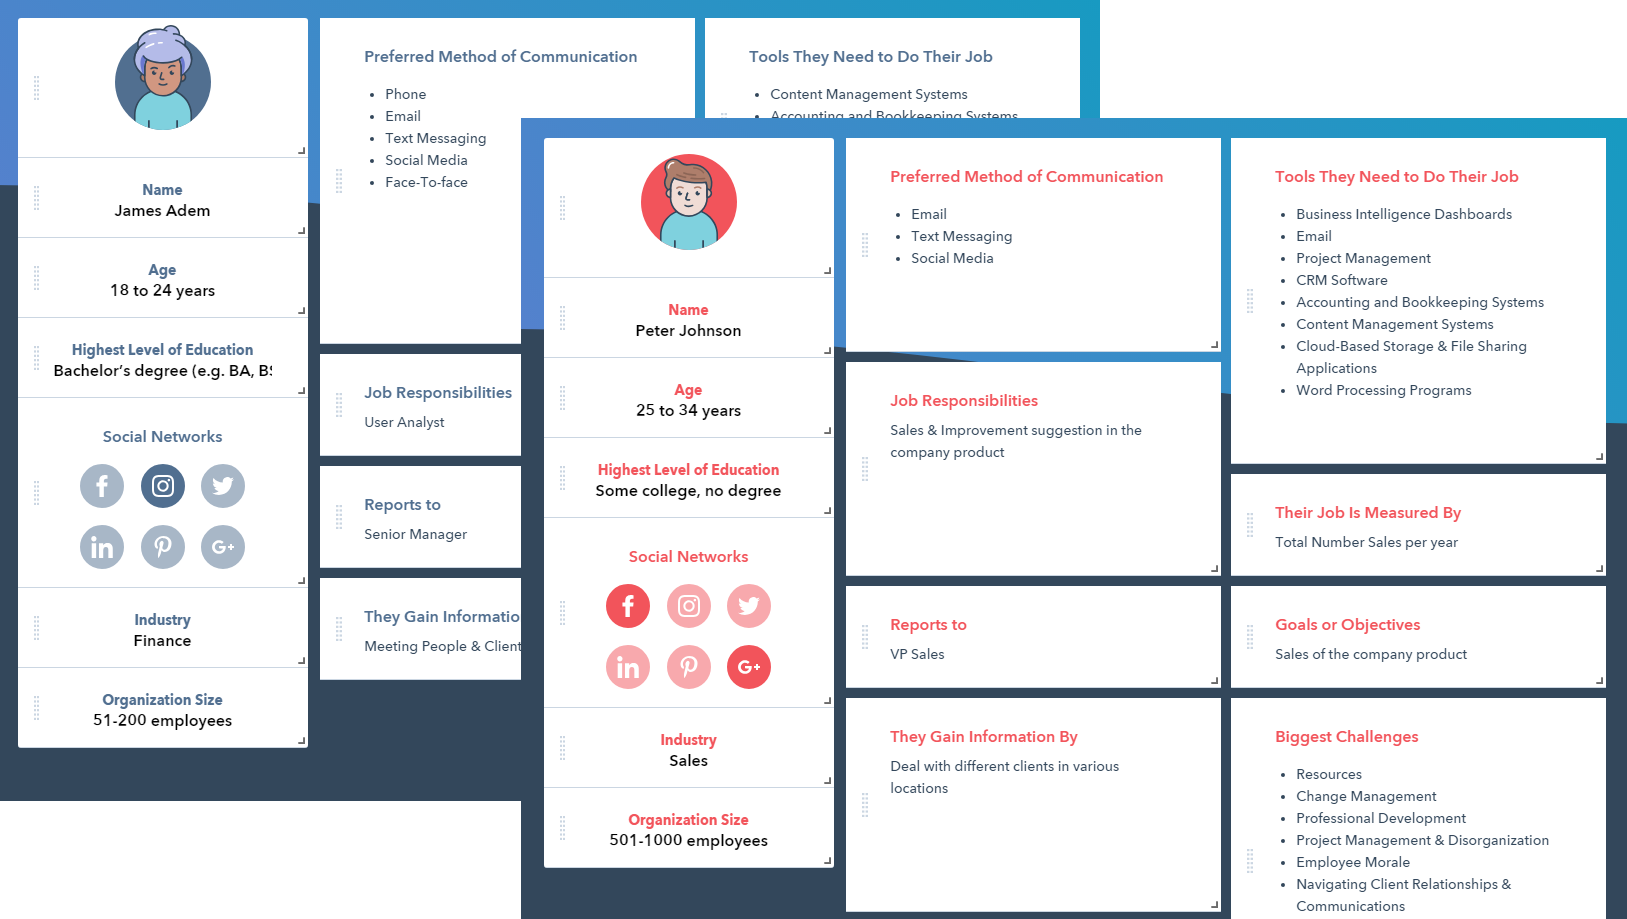 Roommates UX/UI Case Study Assignment in 48 hours - UX Planet